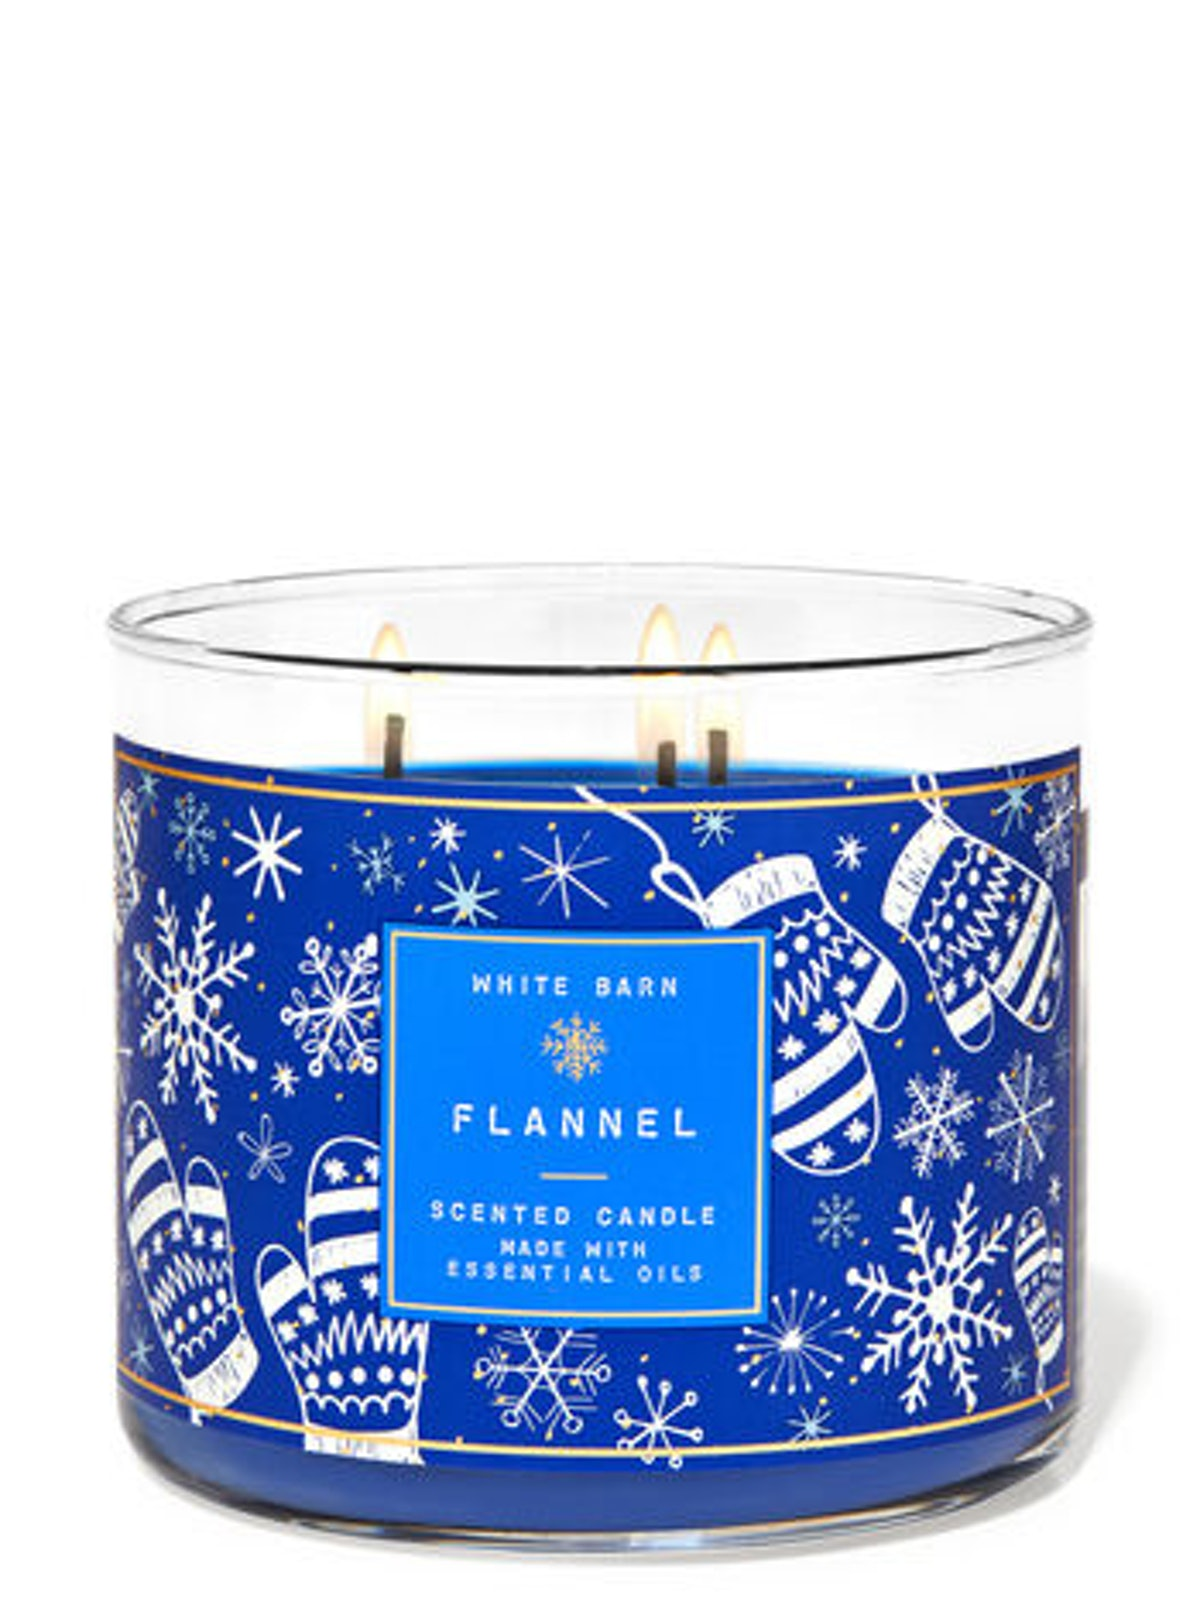 Flannel 3-Wick Cande